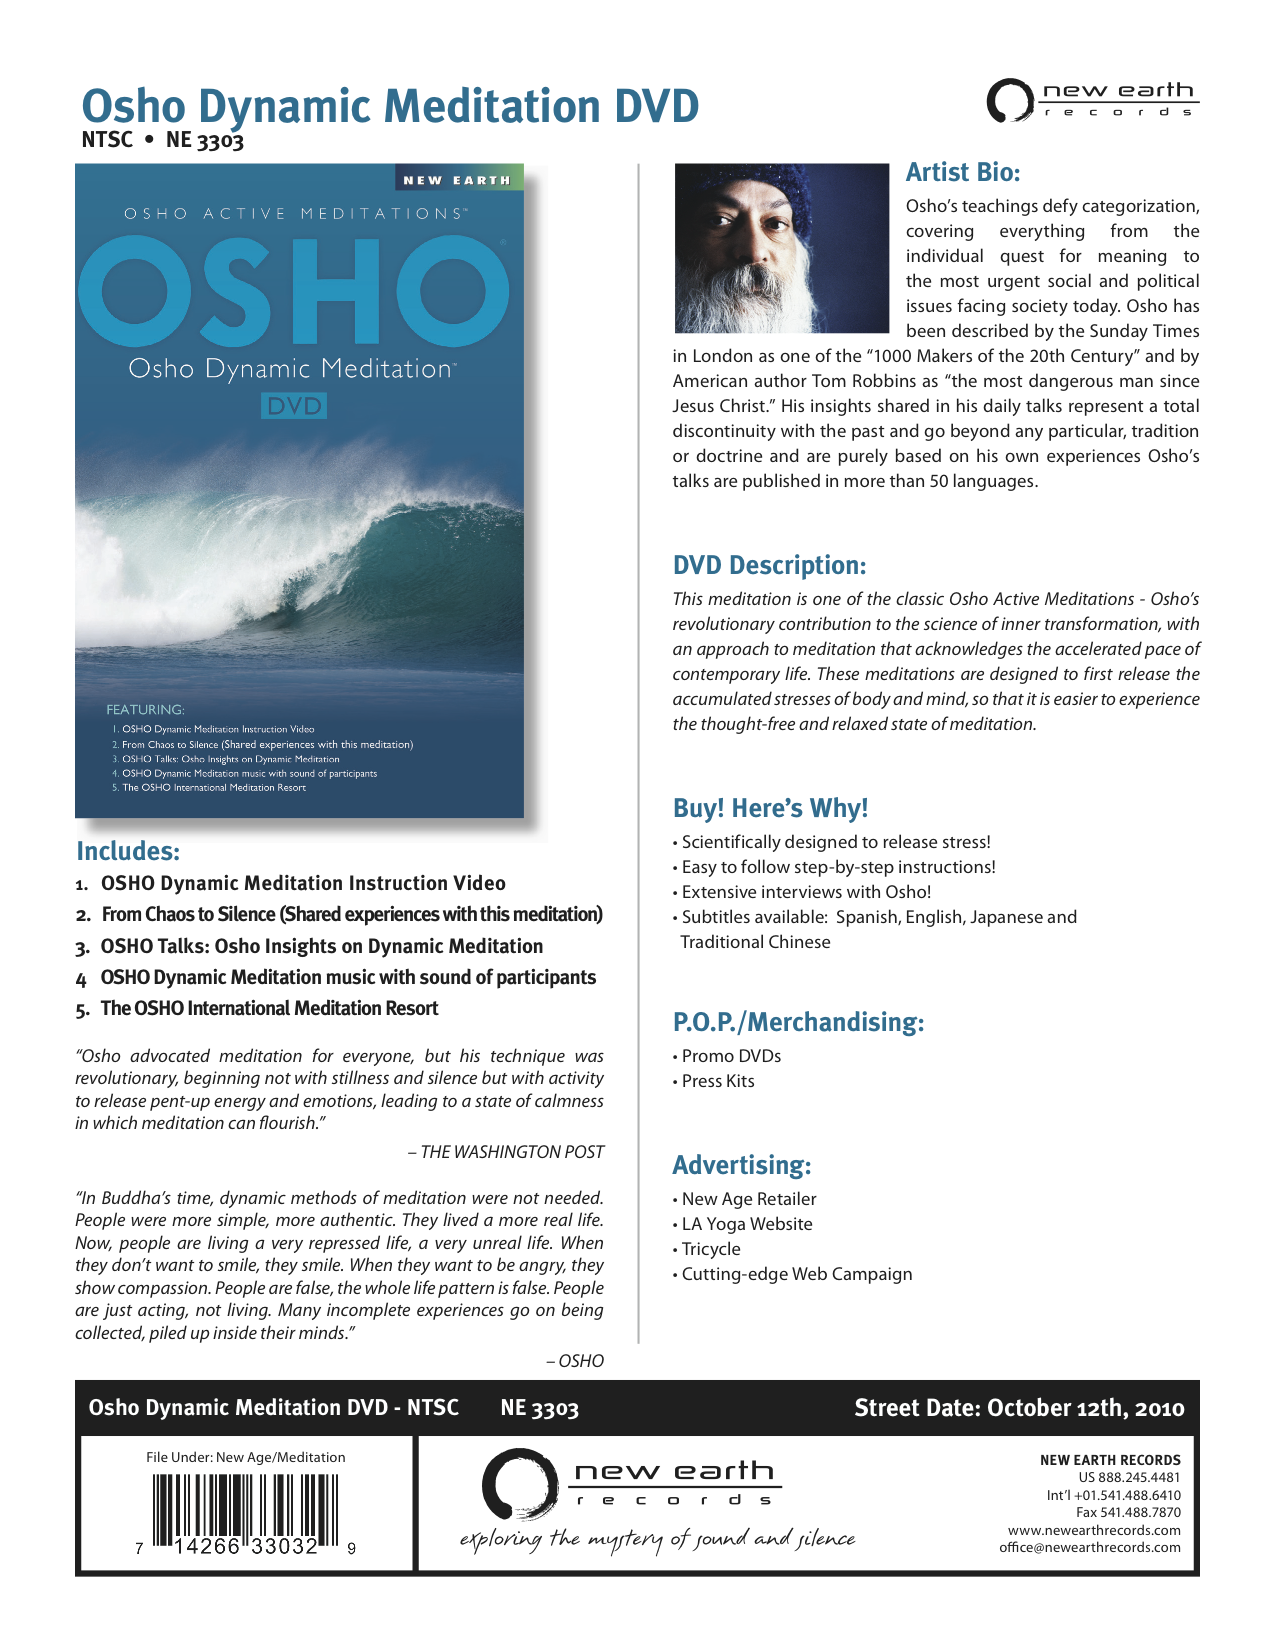 Osho Dynamic Meditation DVD - New Earth Records